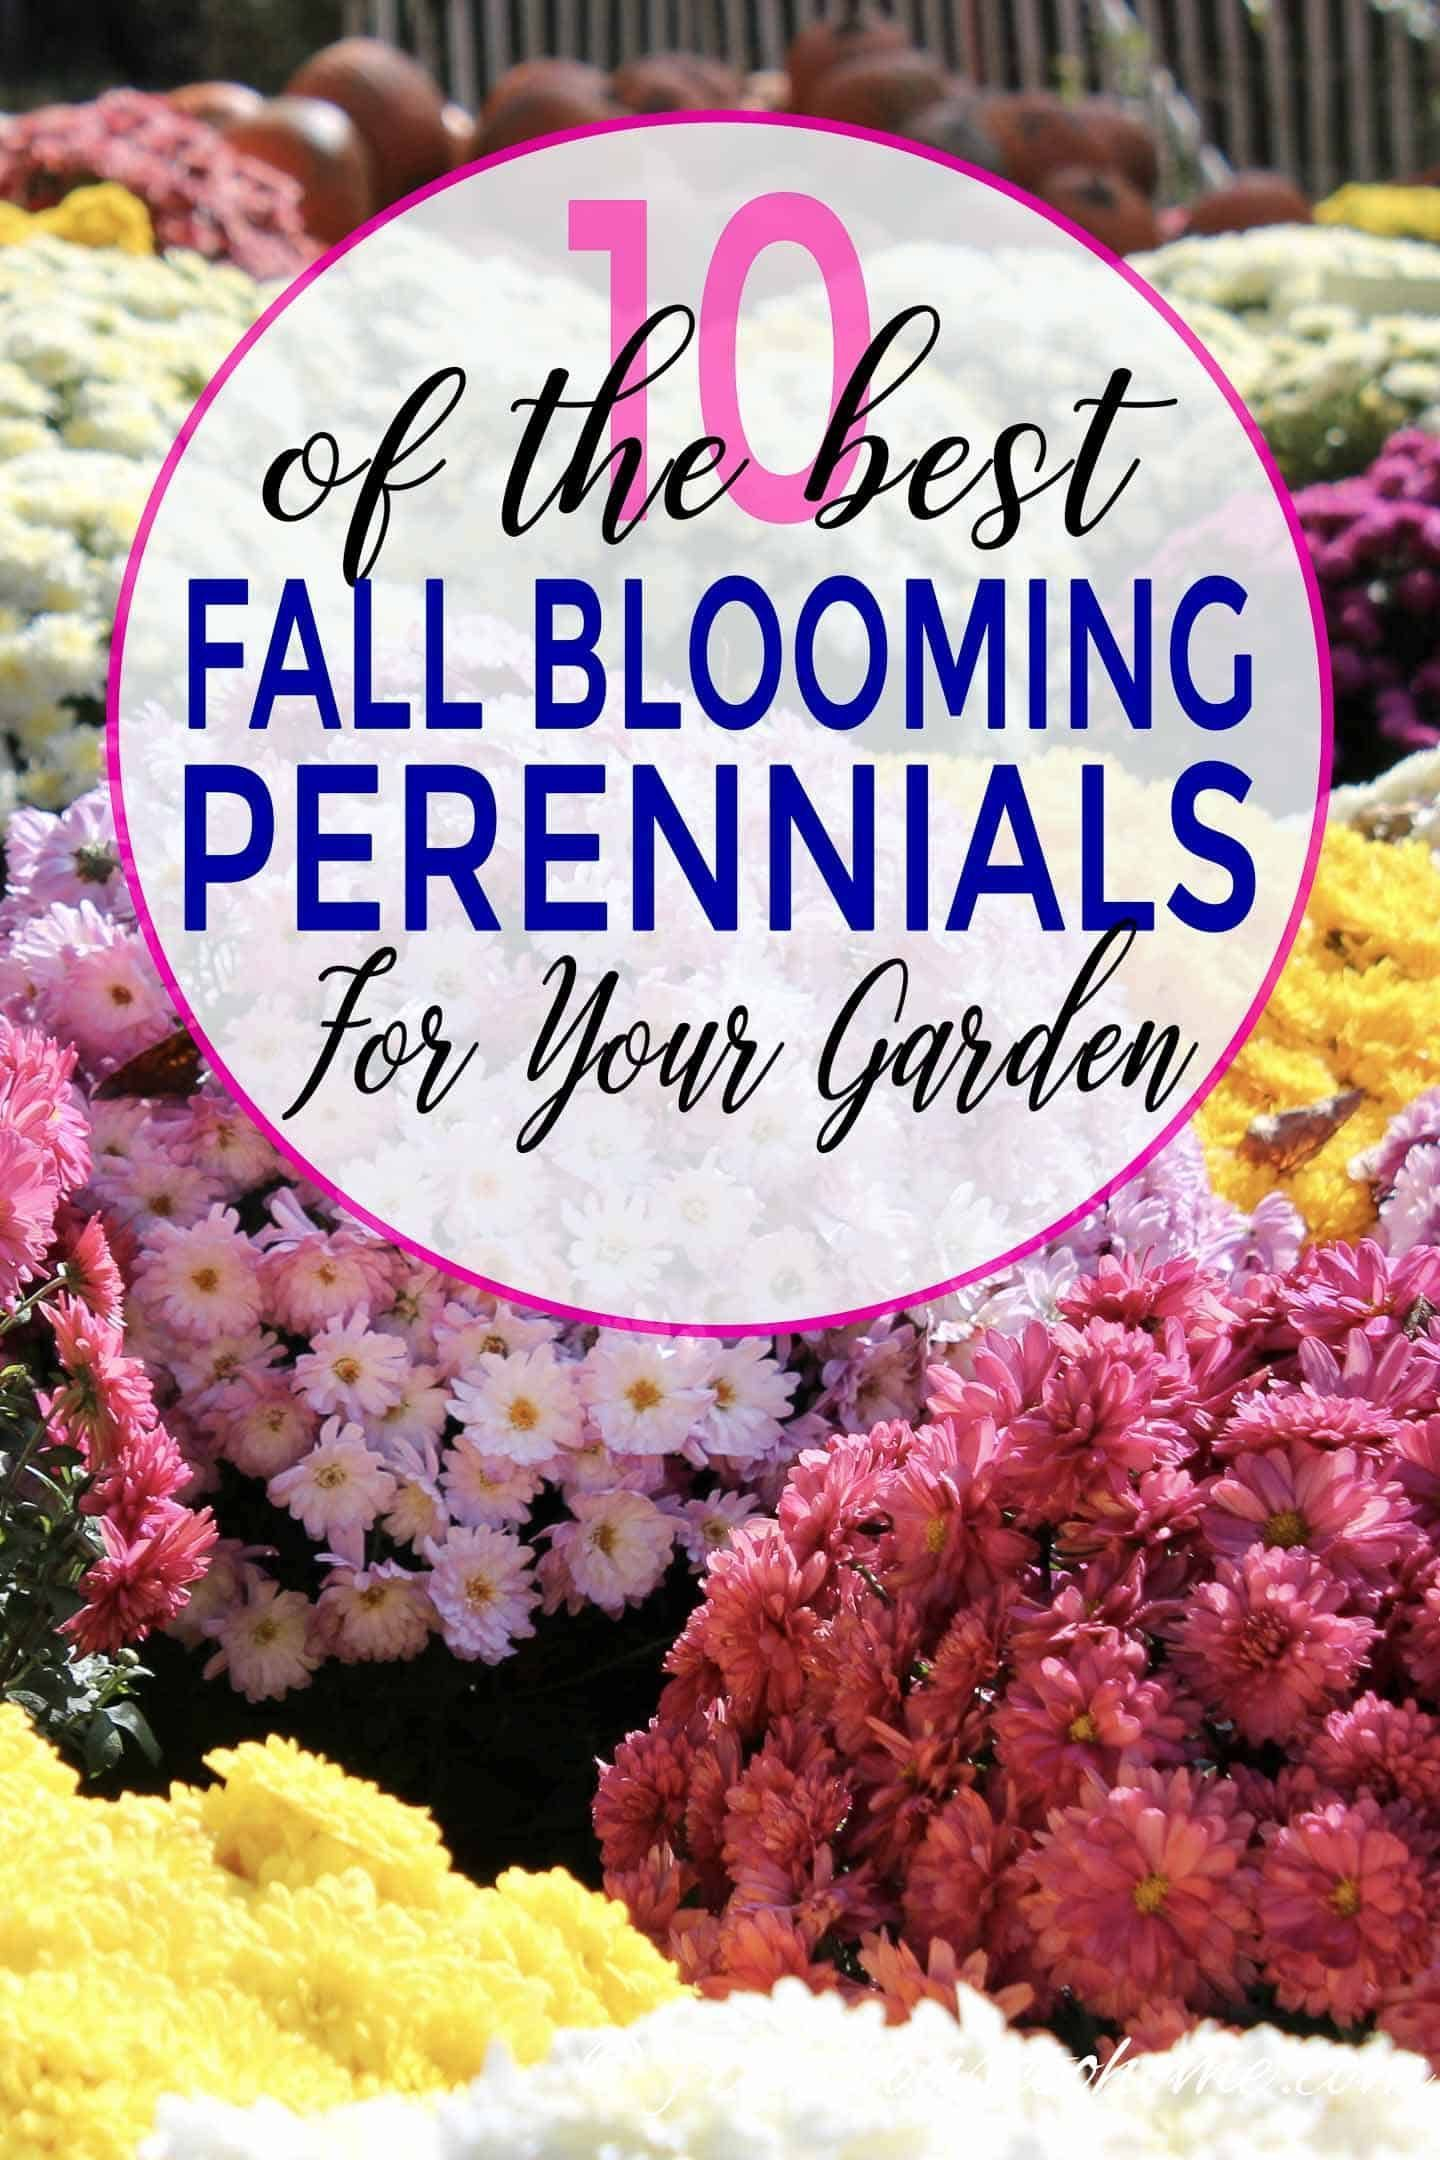 Terrific Photo fall Flower Garden Thoughts An easy guide for flower gardening for beginners. Learn